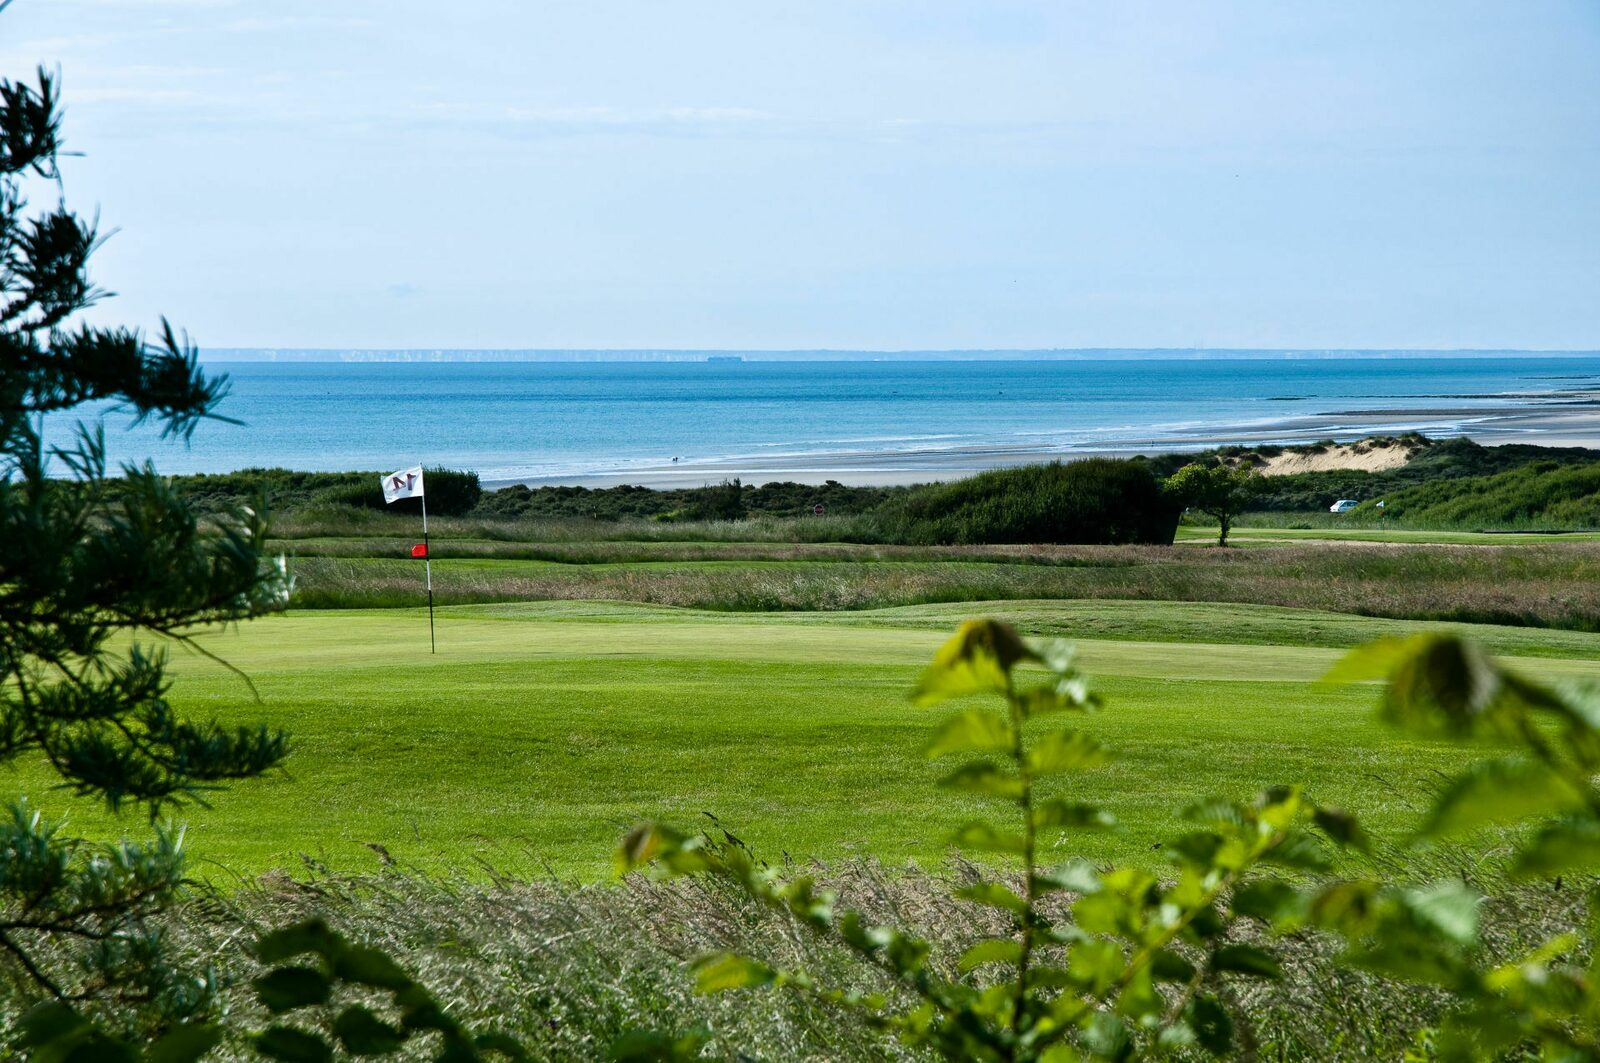 Golf course Golf de Wimereux on a sunny day with the Opal Coast in the background.